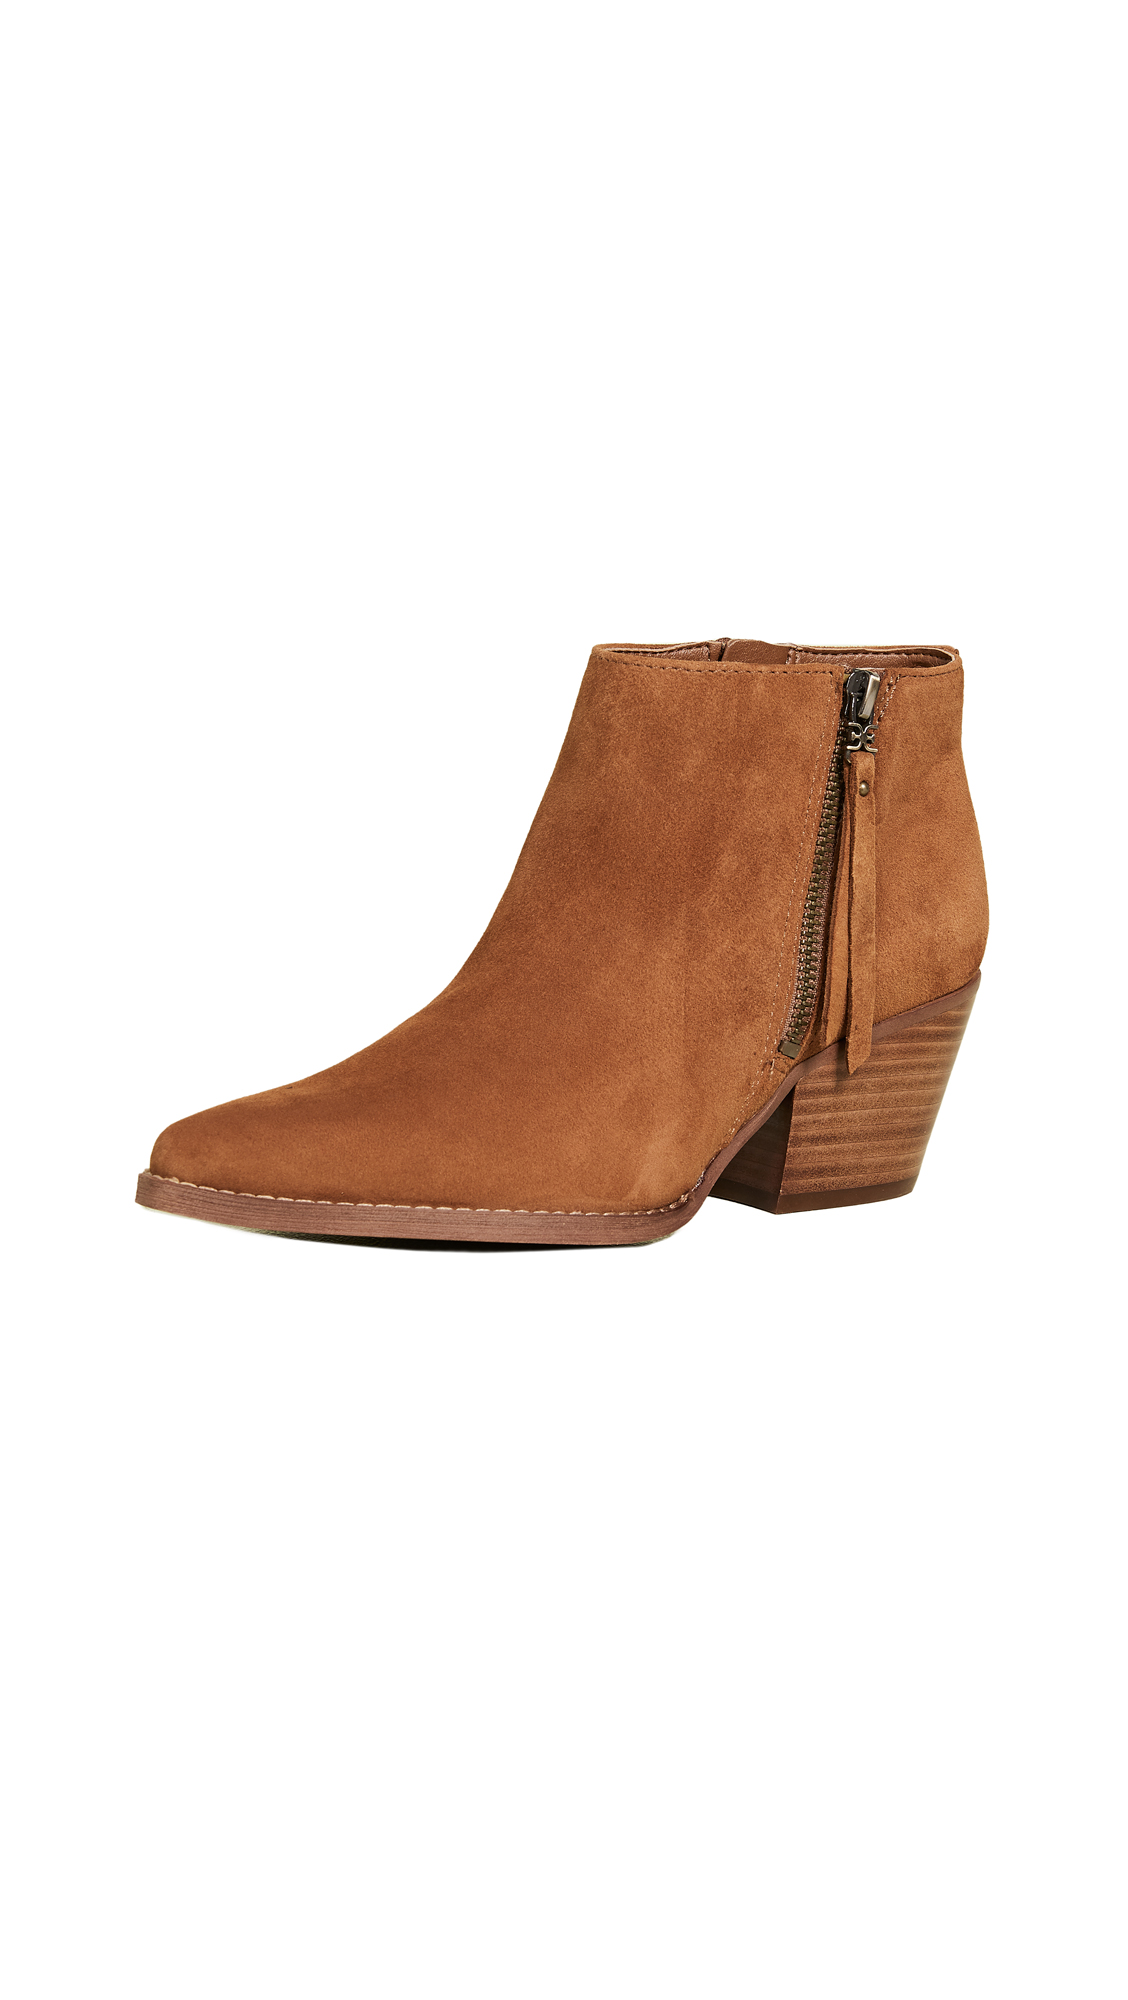 Sam Edelman Walden Booties - Brown